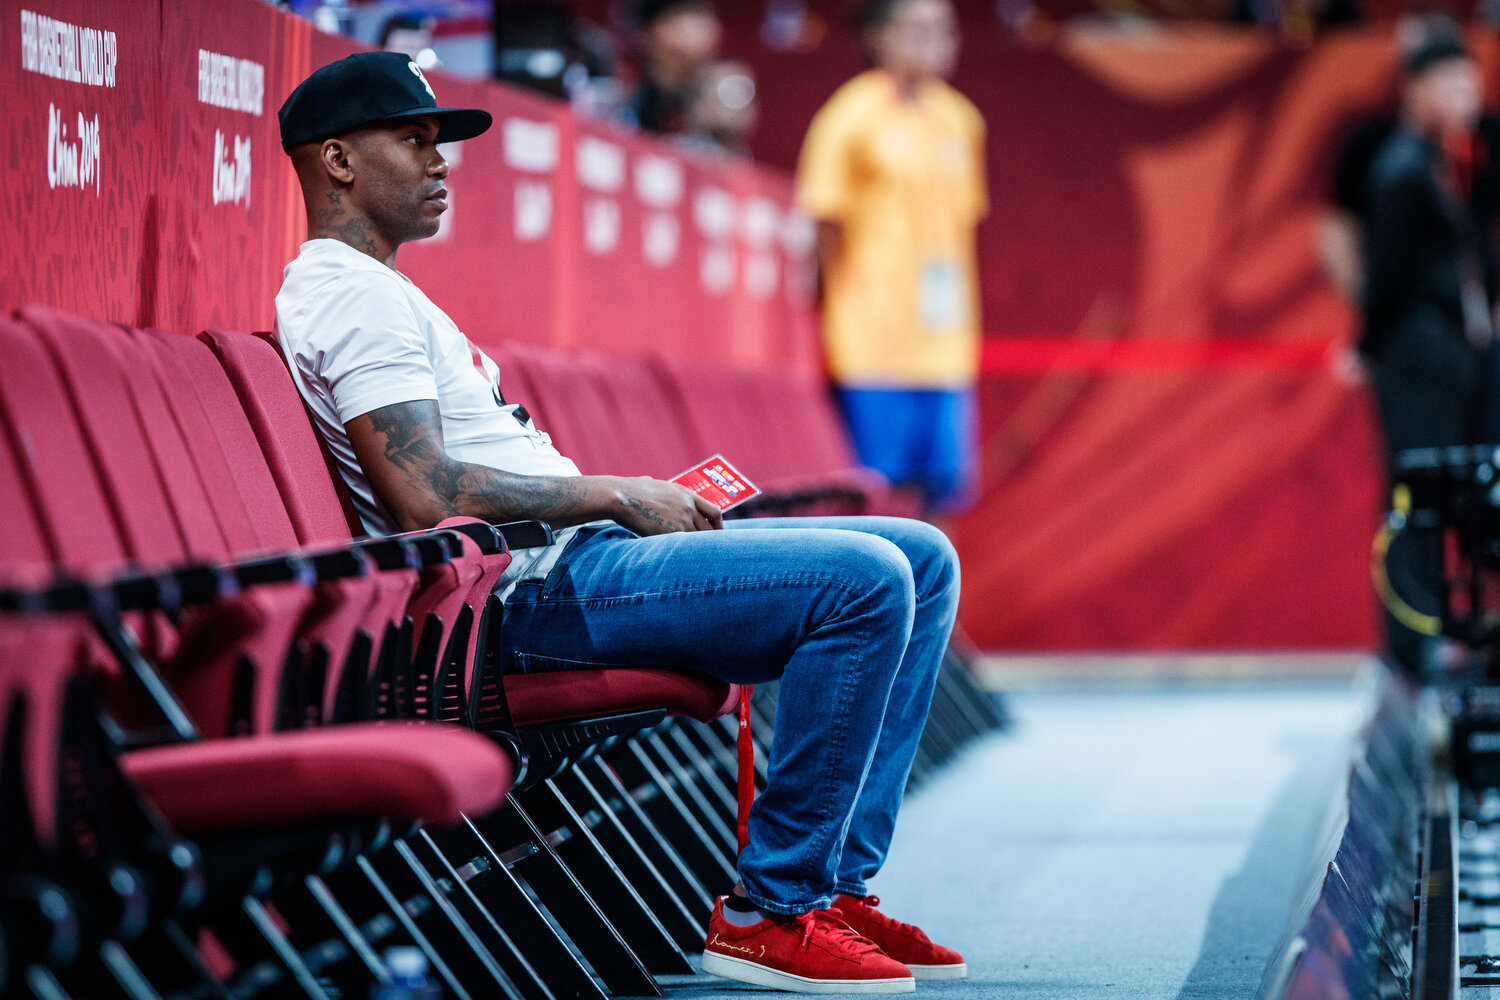 Coney Island legend Stephon Marbury sits courtside during the semi-finals of the FIBA Basketball World Cup. All rights reserved (Mandatory photo credit: Jon Lopez / FIBA )